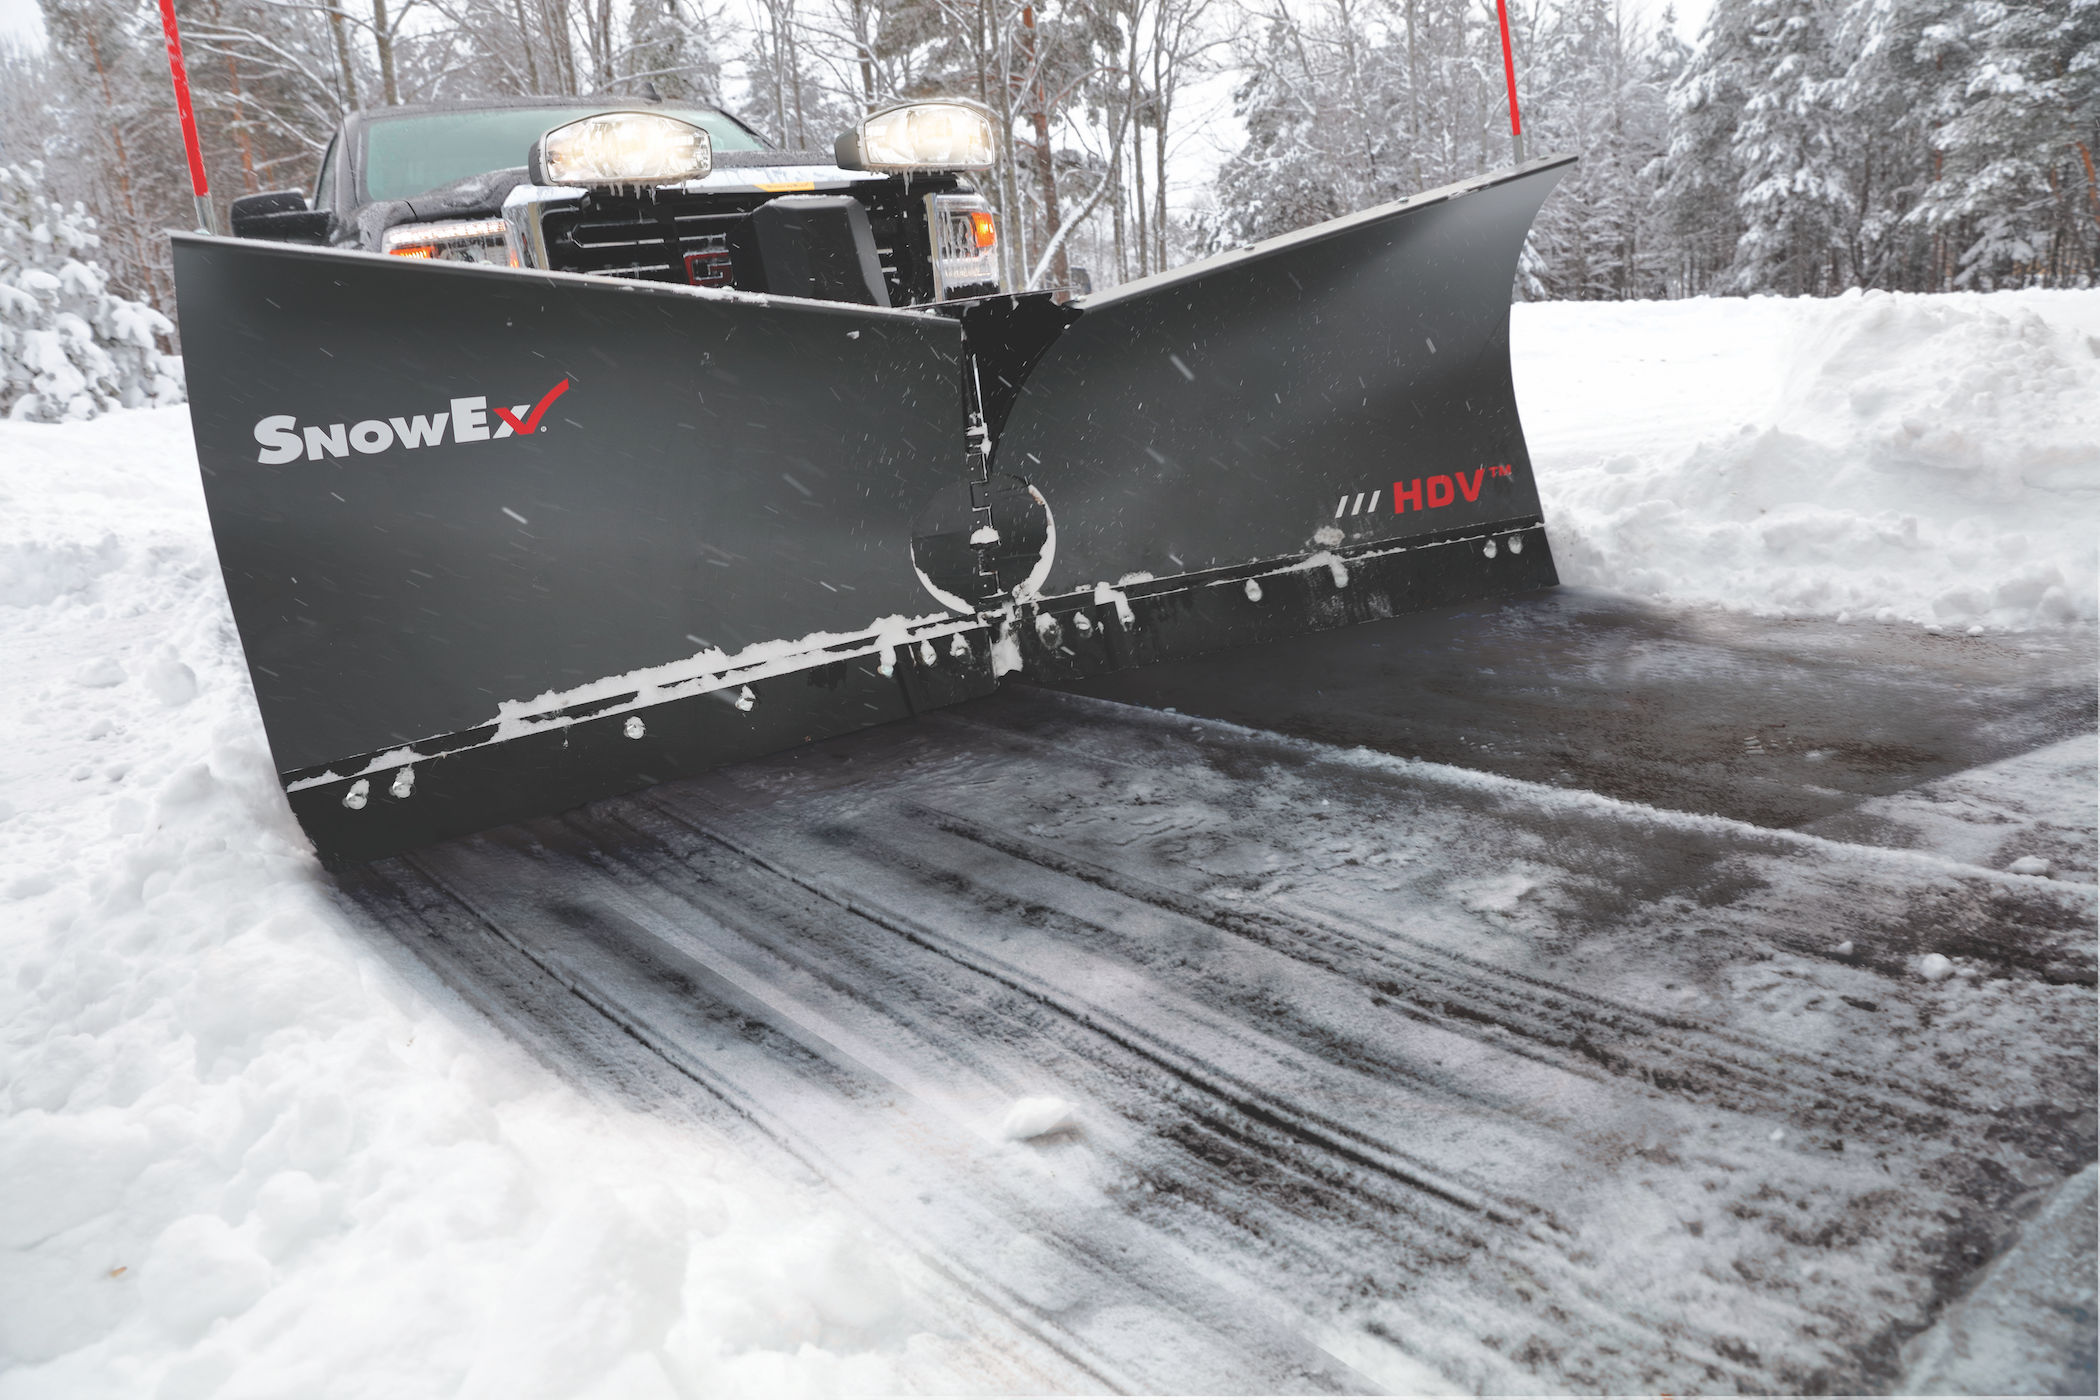 Picking the right snowplow attachment for your operation on boss snow plow installation, boss rt3 wiring-diagram, boss plow truck side wiring, boss snow plow manual, boss snow plow adjustment, boss snow plow parts, snow plow solenoid wire diagram, boss snow plow wheels, boss snow plow lighting diagram, 2000 ford f650 fuse panel diagram, boss valves inc, boss v-blade, boss snow plow lights, boss snow plow controls, hiniker wire harness diagram, boss plow lights diagram, boss snow plow maintenance, boss snow plows for atvs, boss snow plow solenoid diagram, boss v-plow troubleshooting,